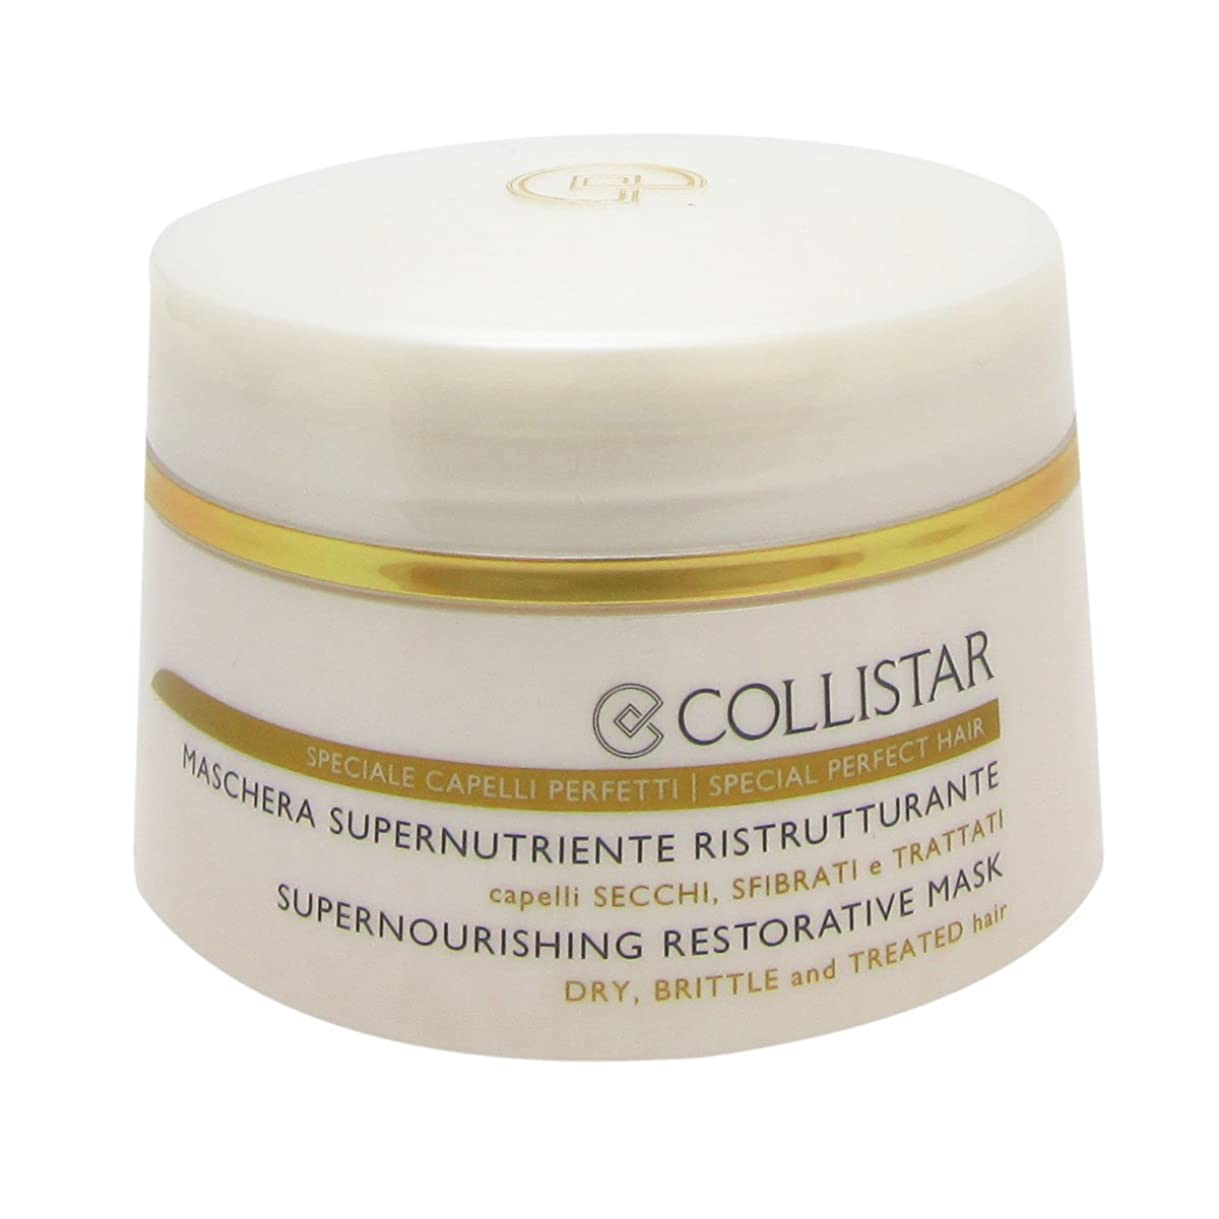 吸うクック上げるCollistar Supernourishing Restorative Mask 200ml [並行輸入品]